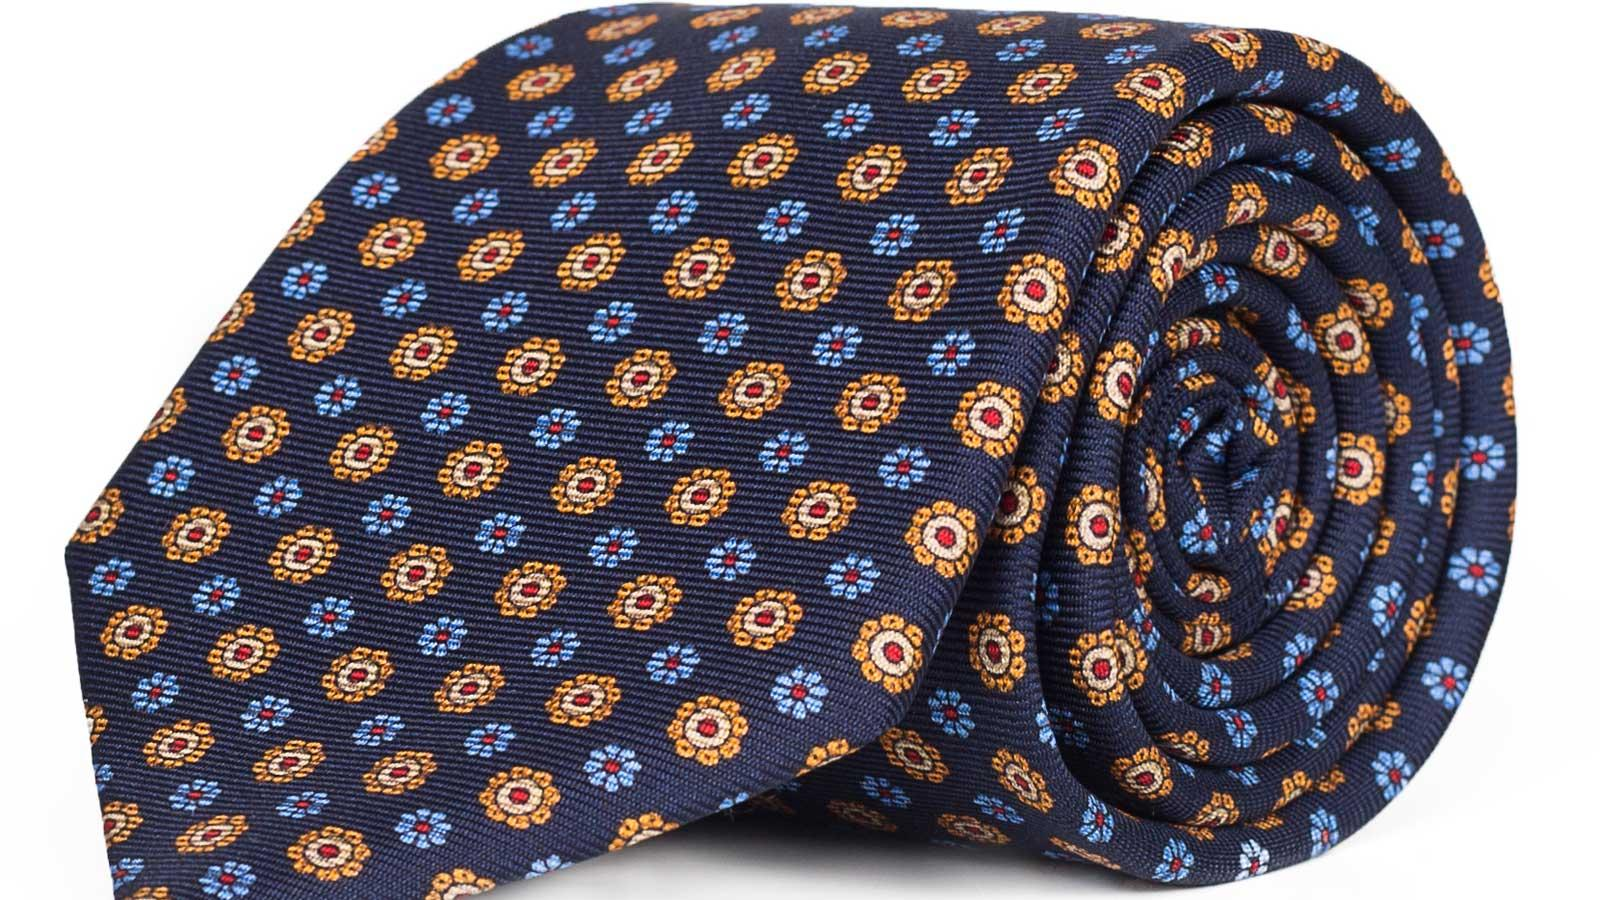 Blue & Gold Floral 28 Momme Silk Tie - slider image